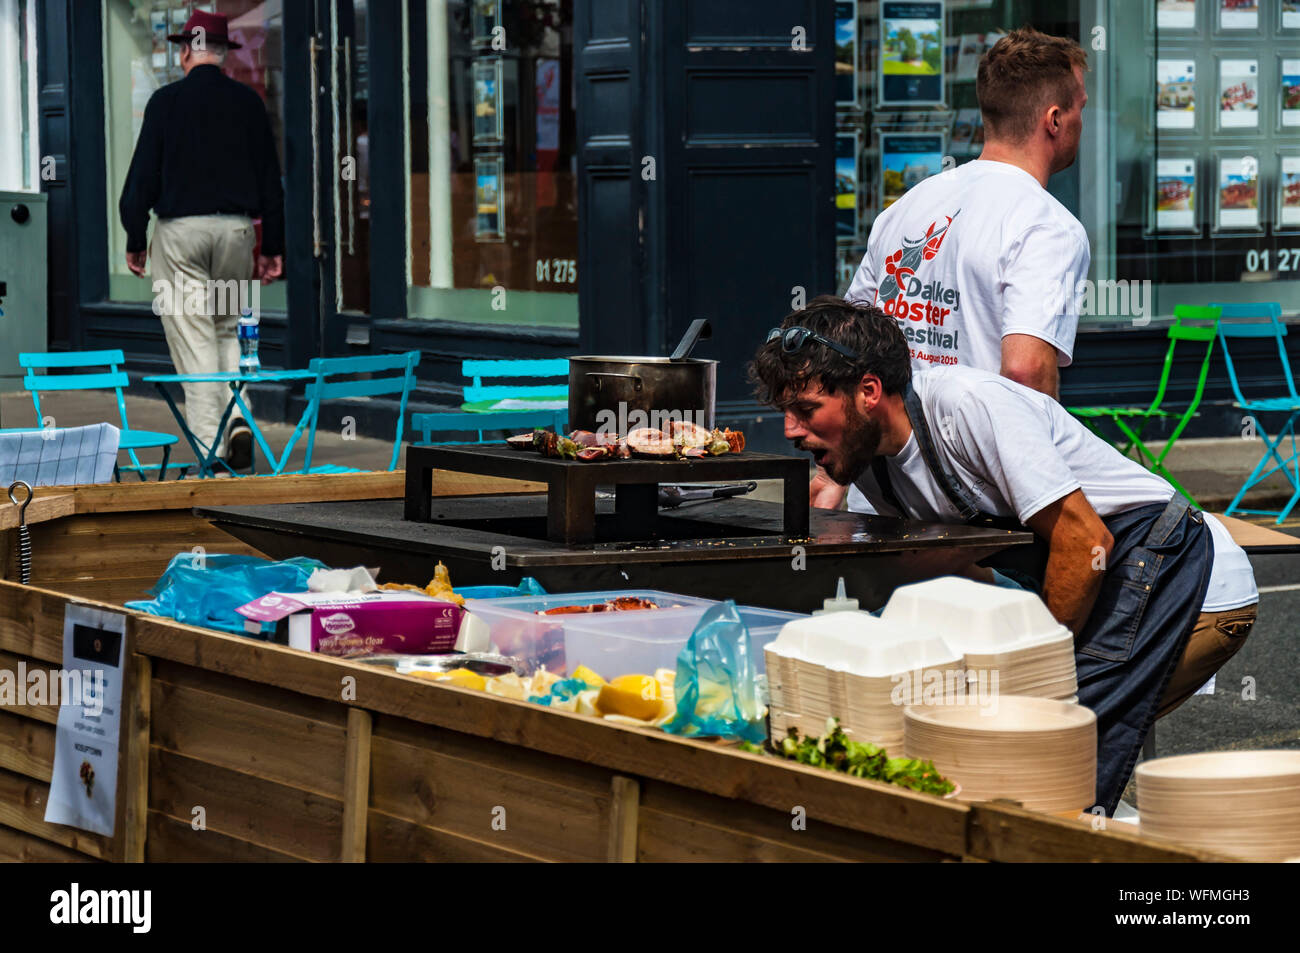 Chef Cook Lighting Up Street Charcoal Grill With Lobster And Other Seafood On It Dalkey Dublin Ireland 25 August 2019 Seafood Dalkey Lobster Fest Stock Photo Alamy